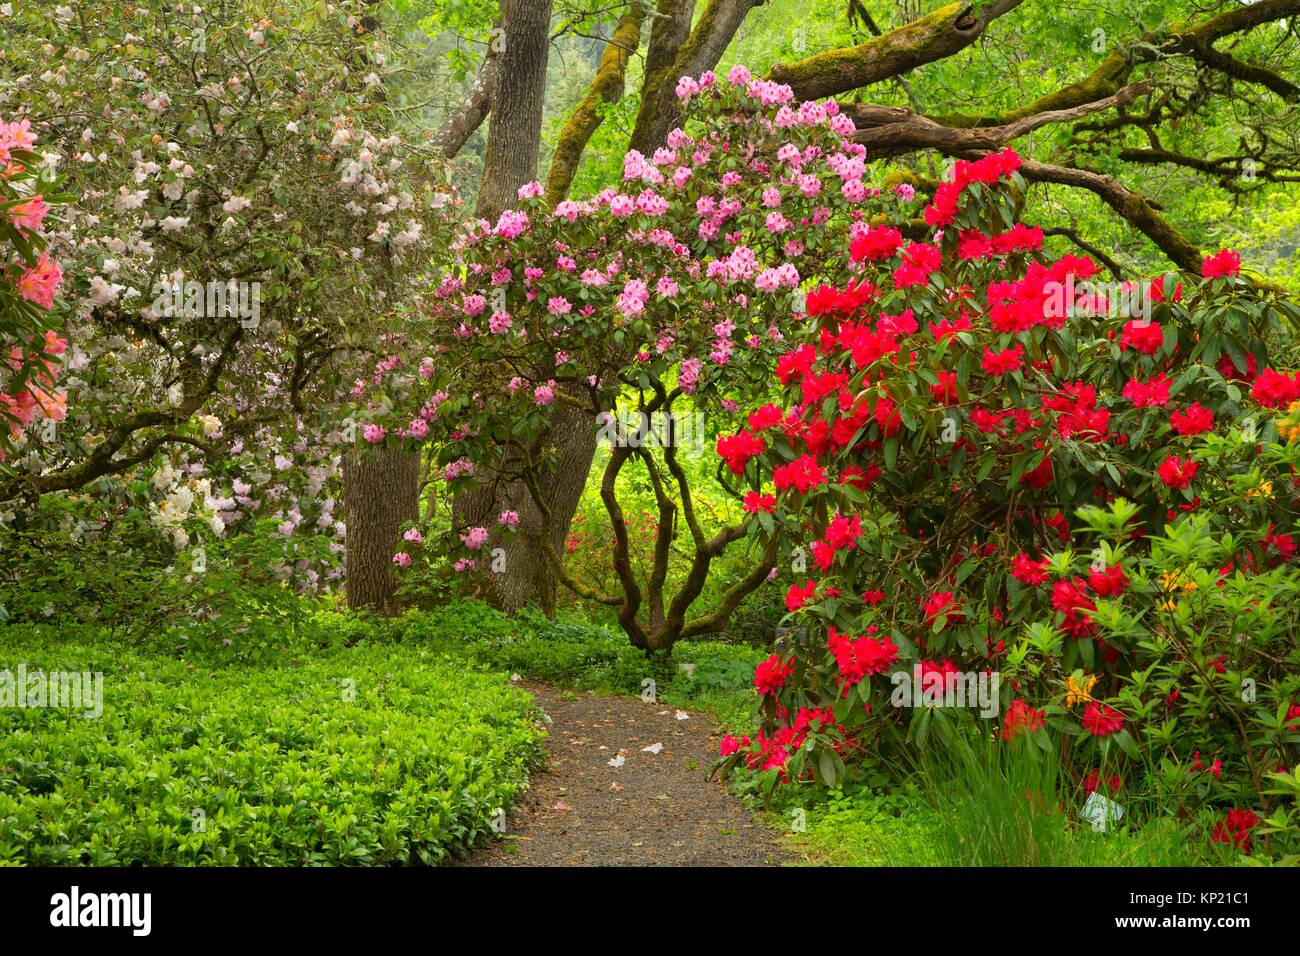 Rhododendron bloom with garden path, Rhododendron Garden, Hendricks Park, Eugene, Oregon. - Stock Image